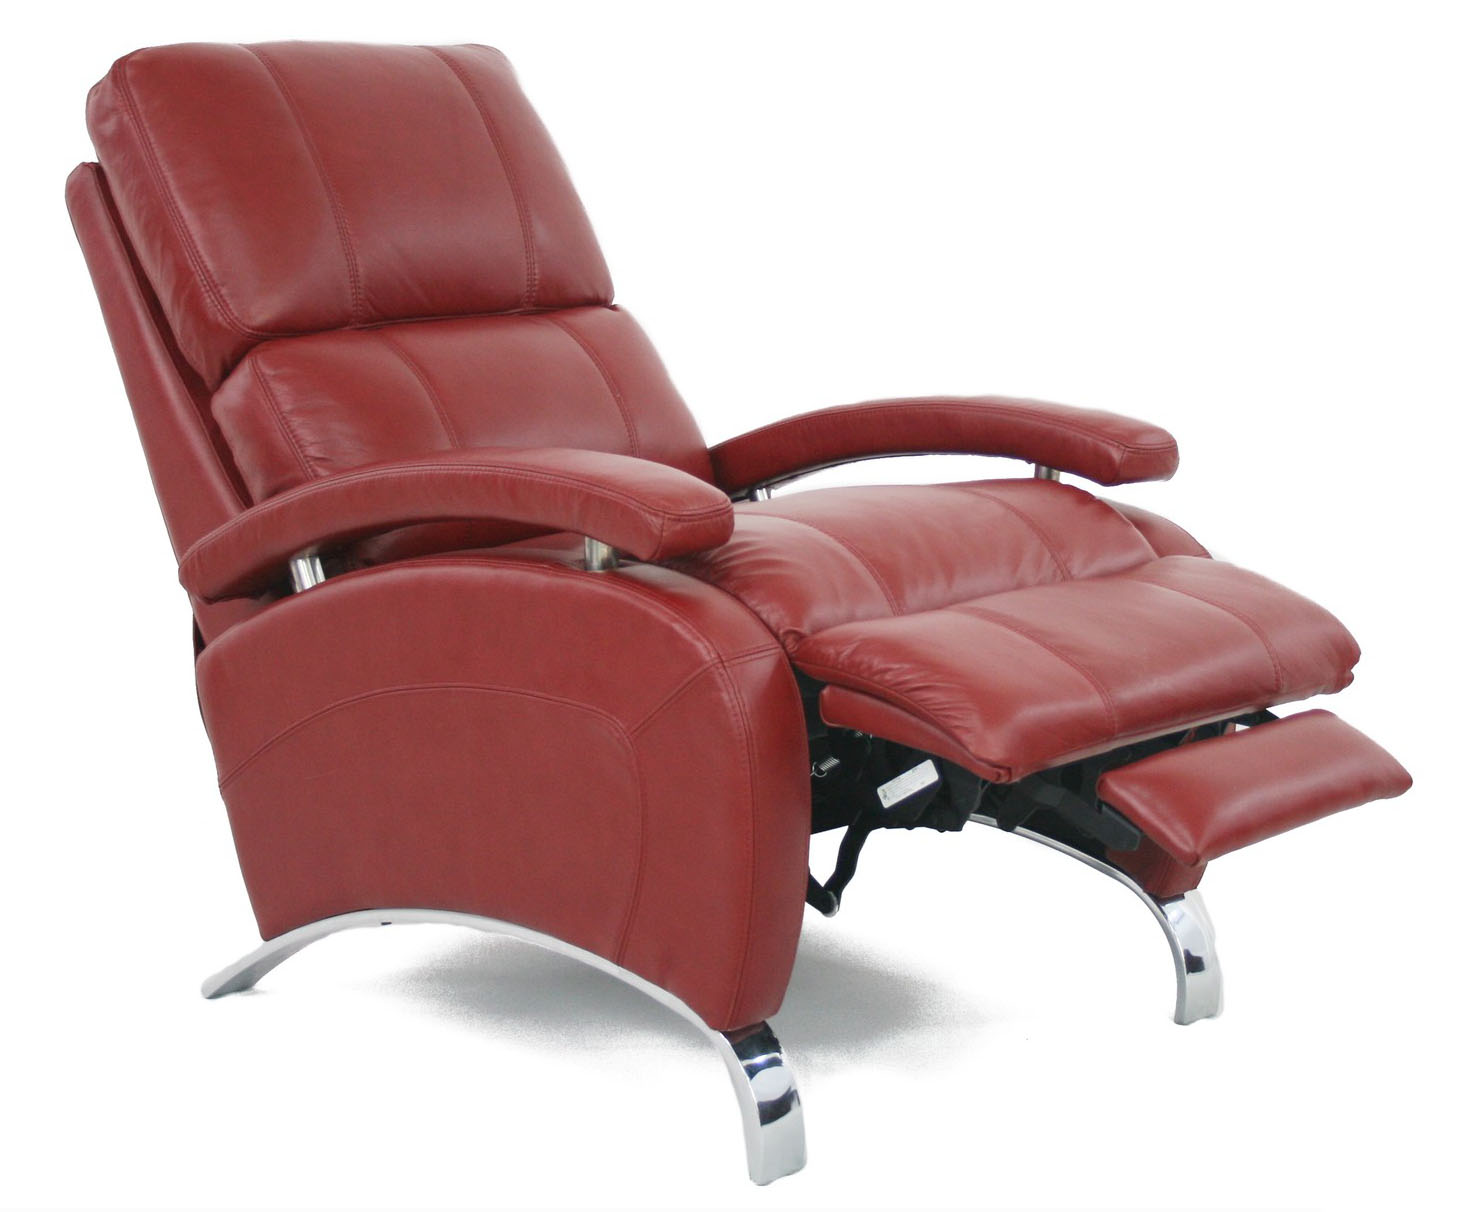 Perfect Barcalounger Oracle II Leather Recliner Chair